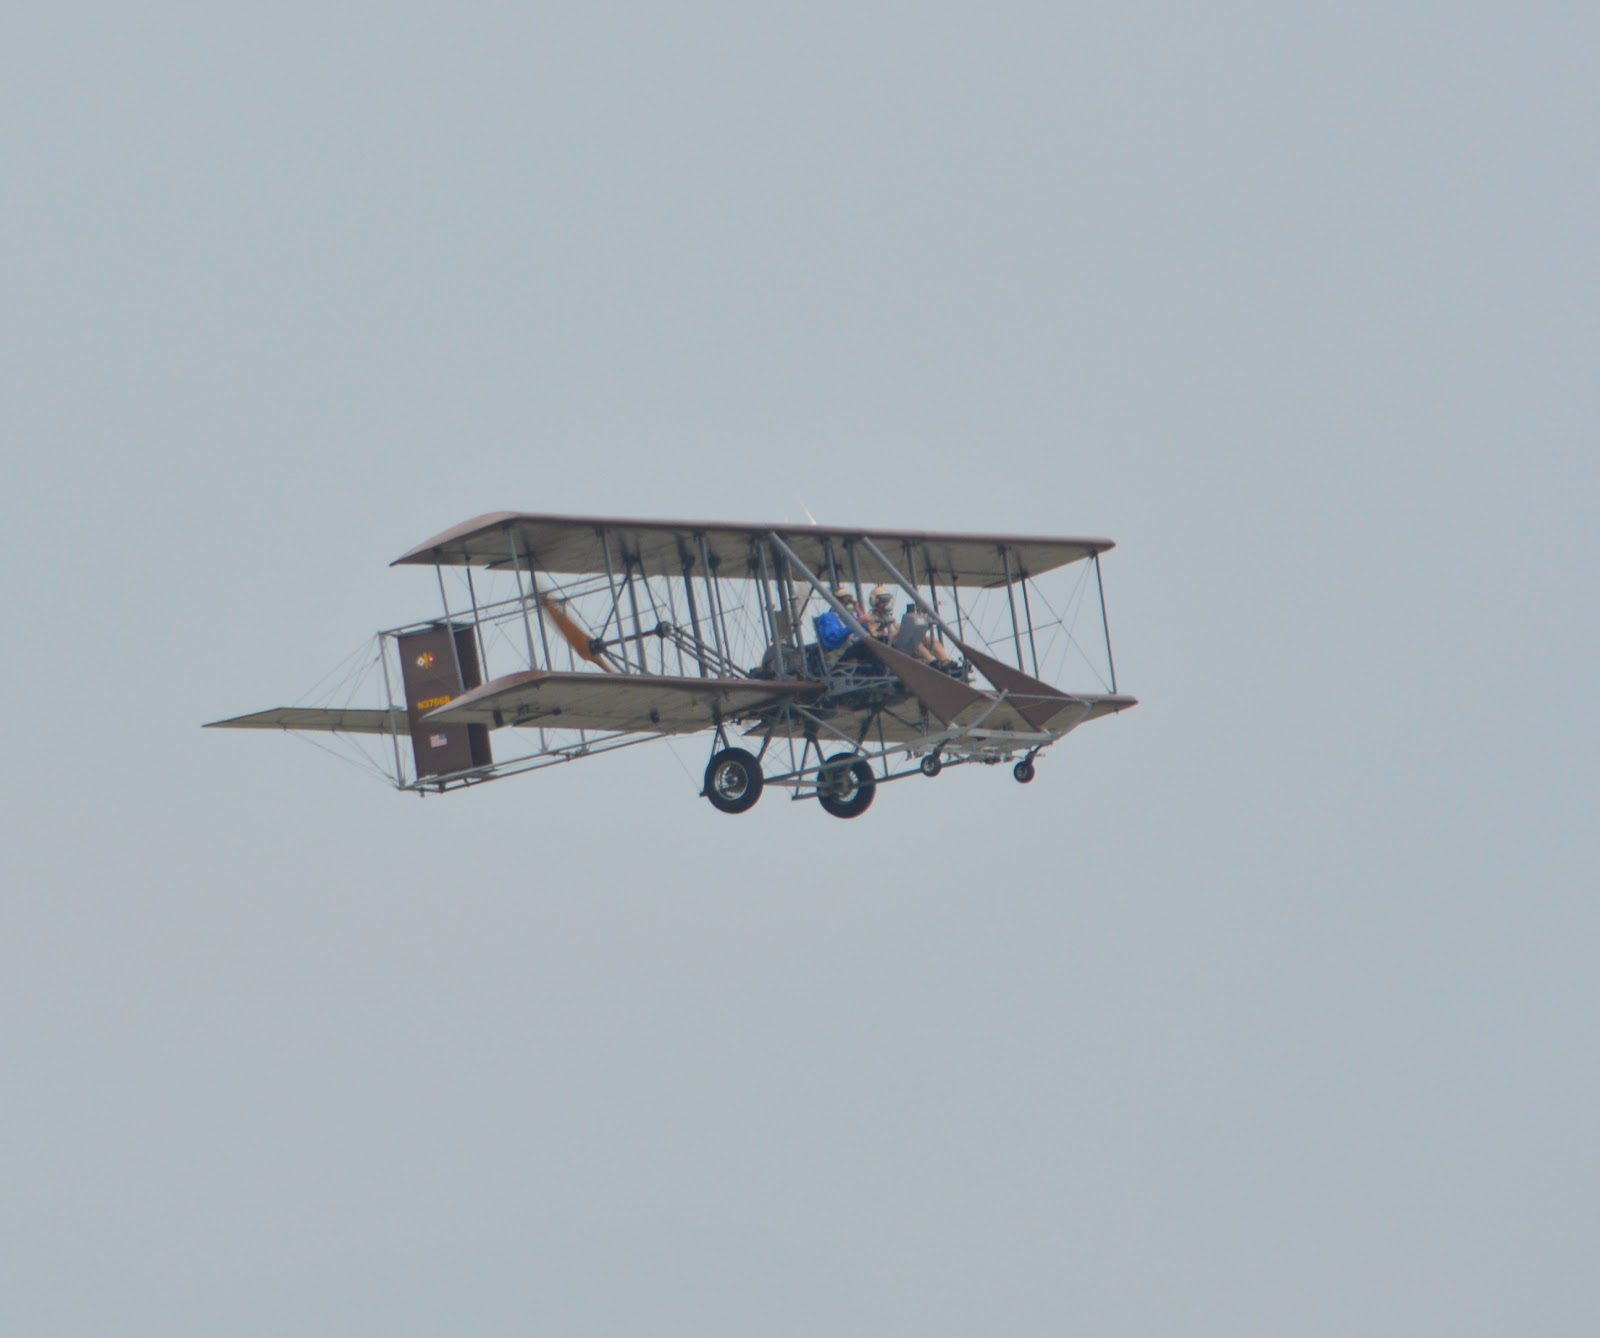 cozy birdhouse | dayton air show 2014, wright b flyer